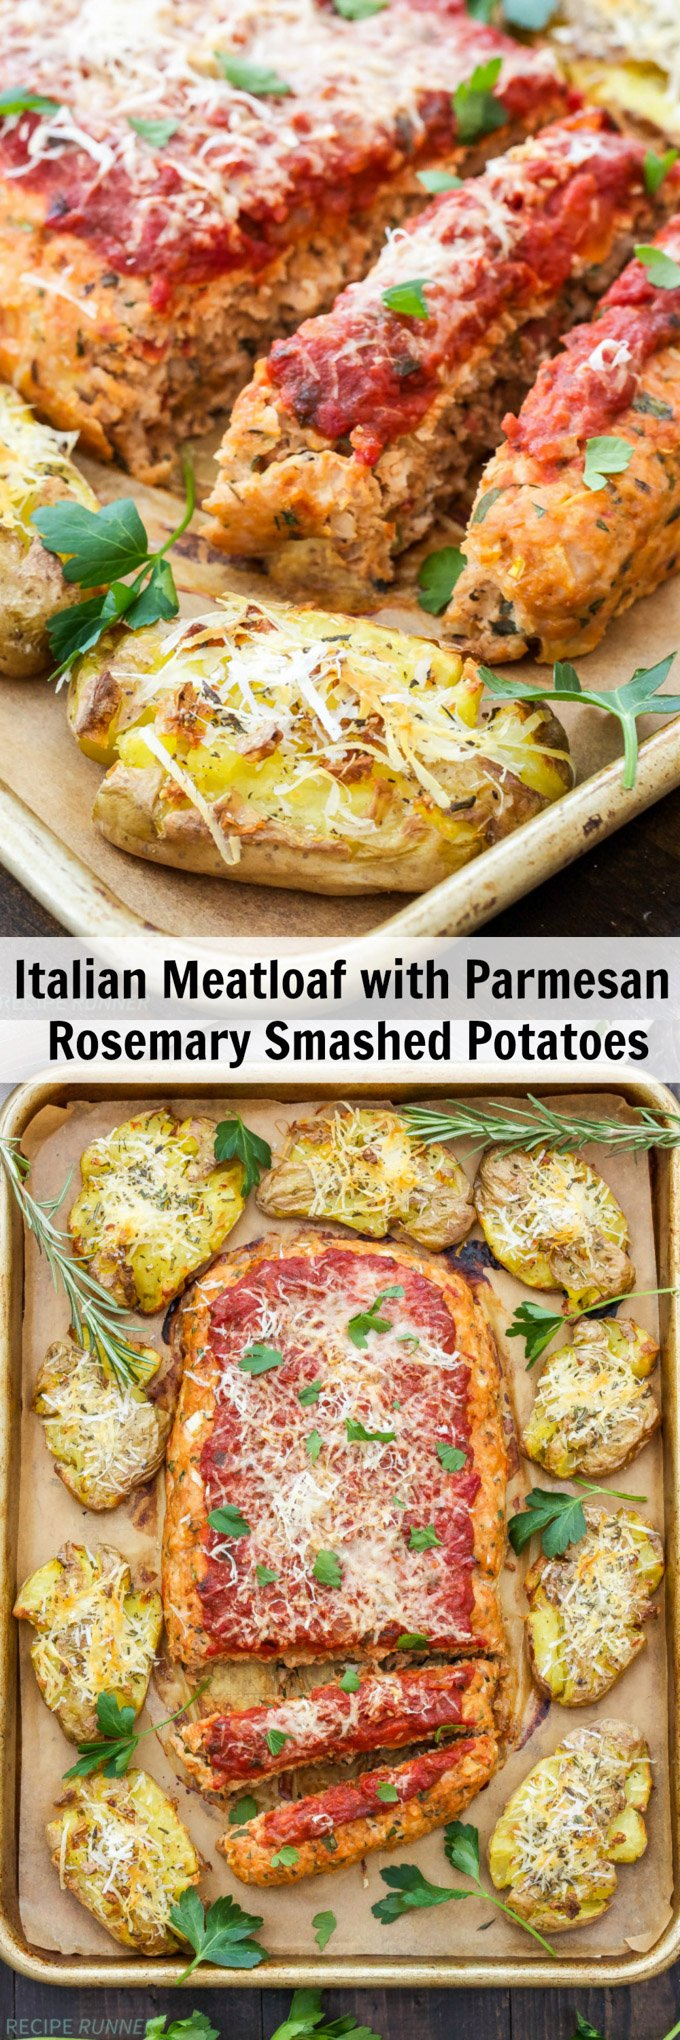 Meatloaf Parmesan and Rosemary Potatoes- 490 calories